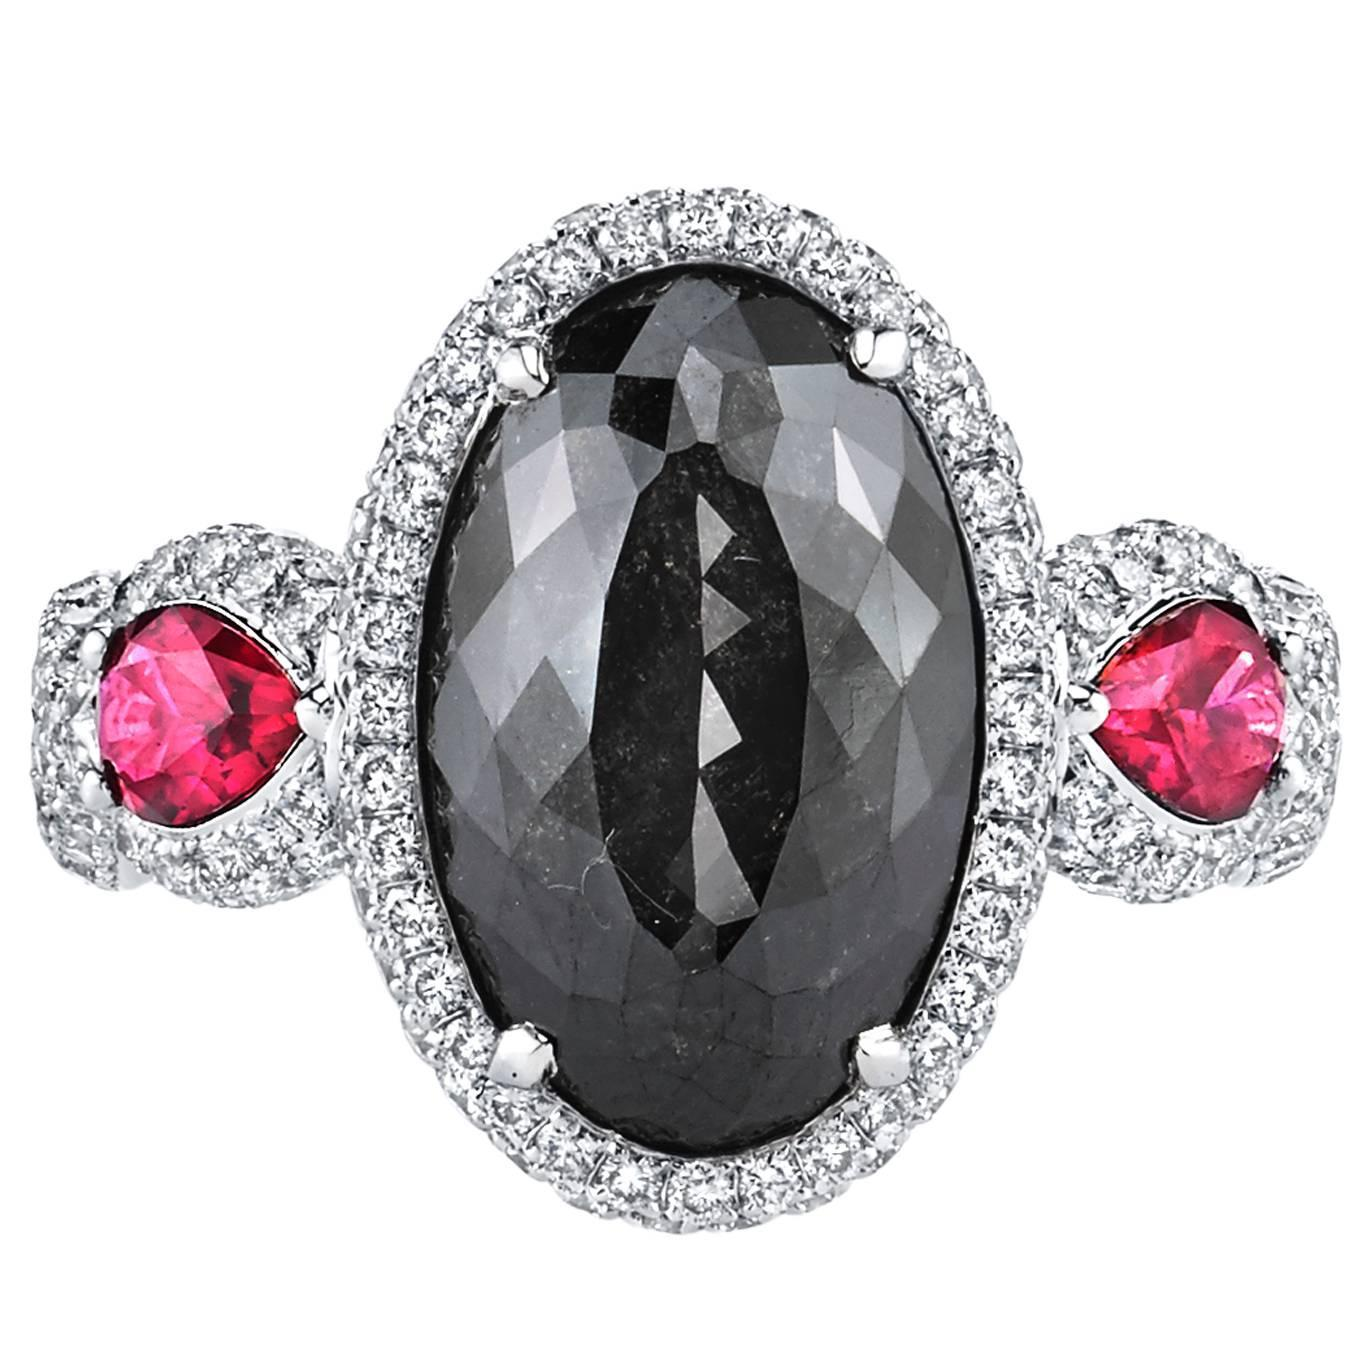 Natural Fancy GIA Cert 6 21 Carat Black Diamond Ruby Gold Ring For Sale at 1s